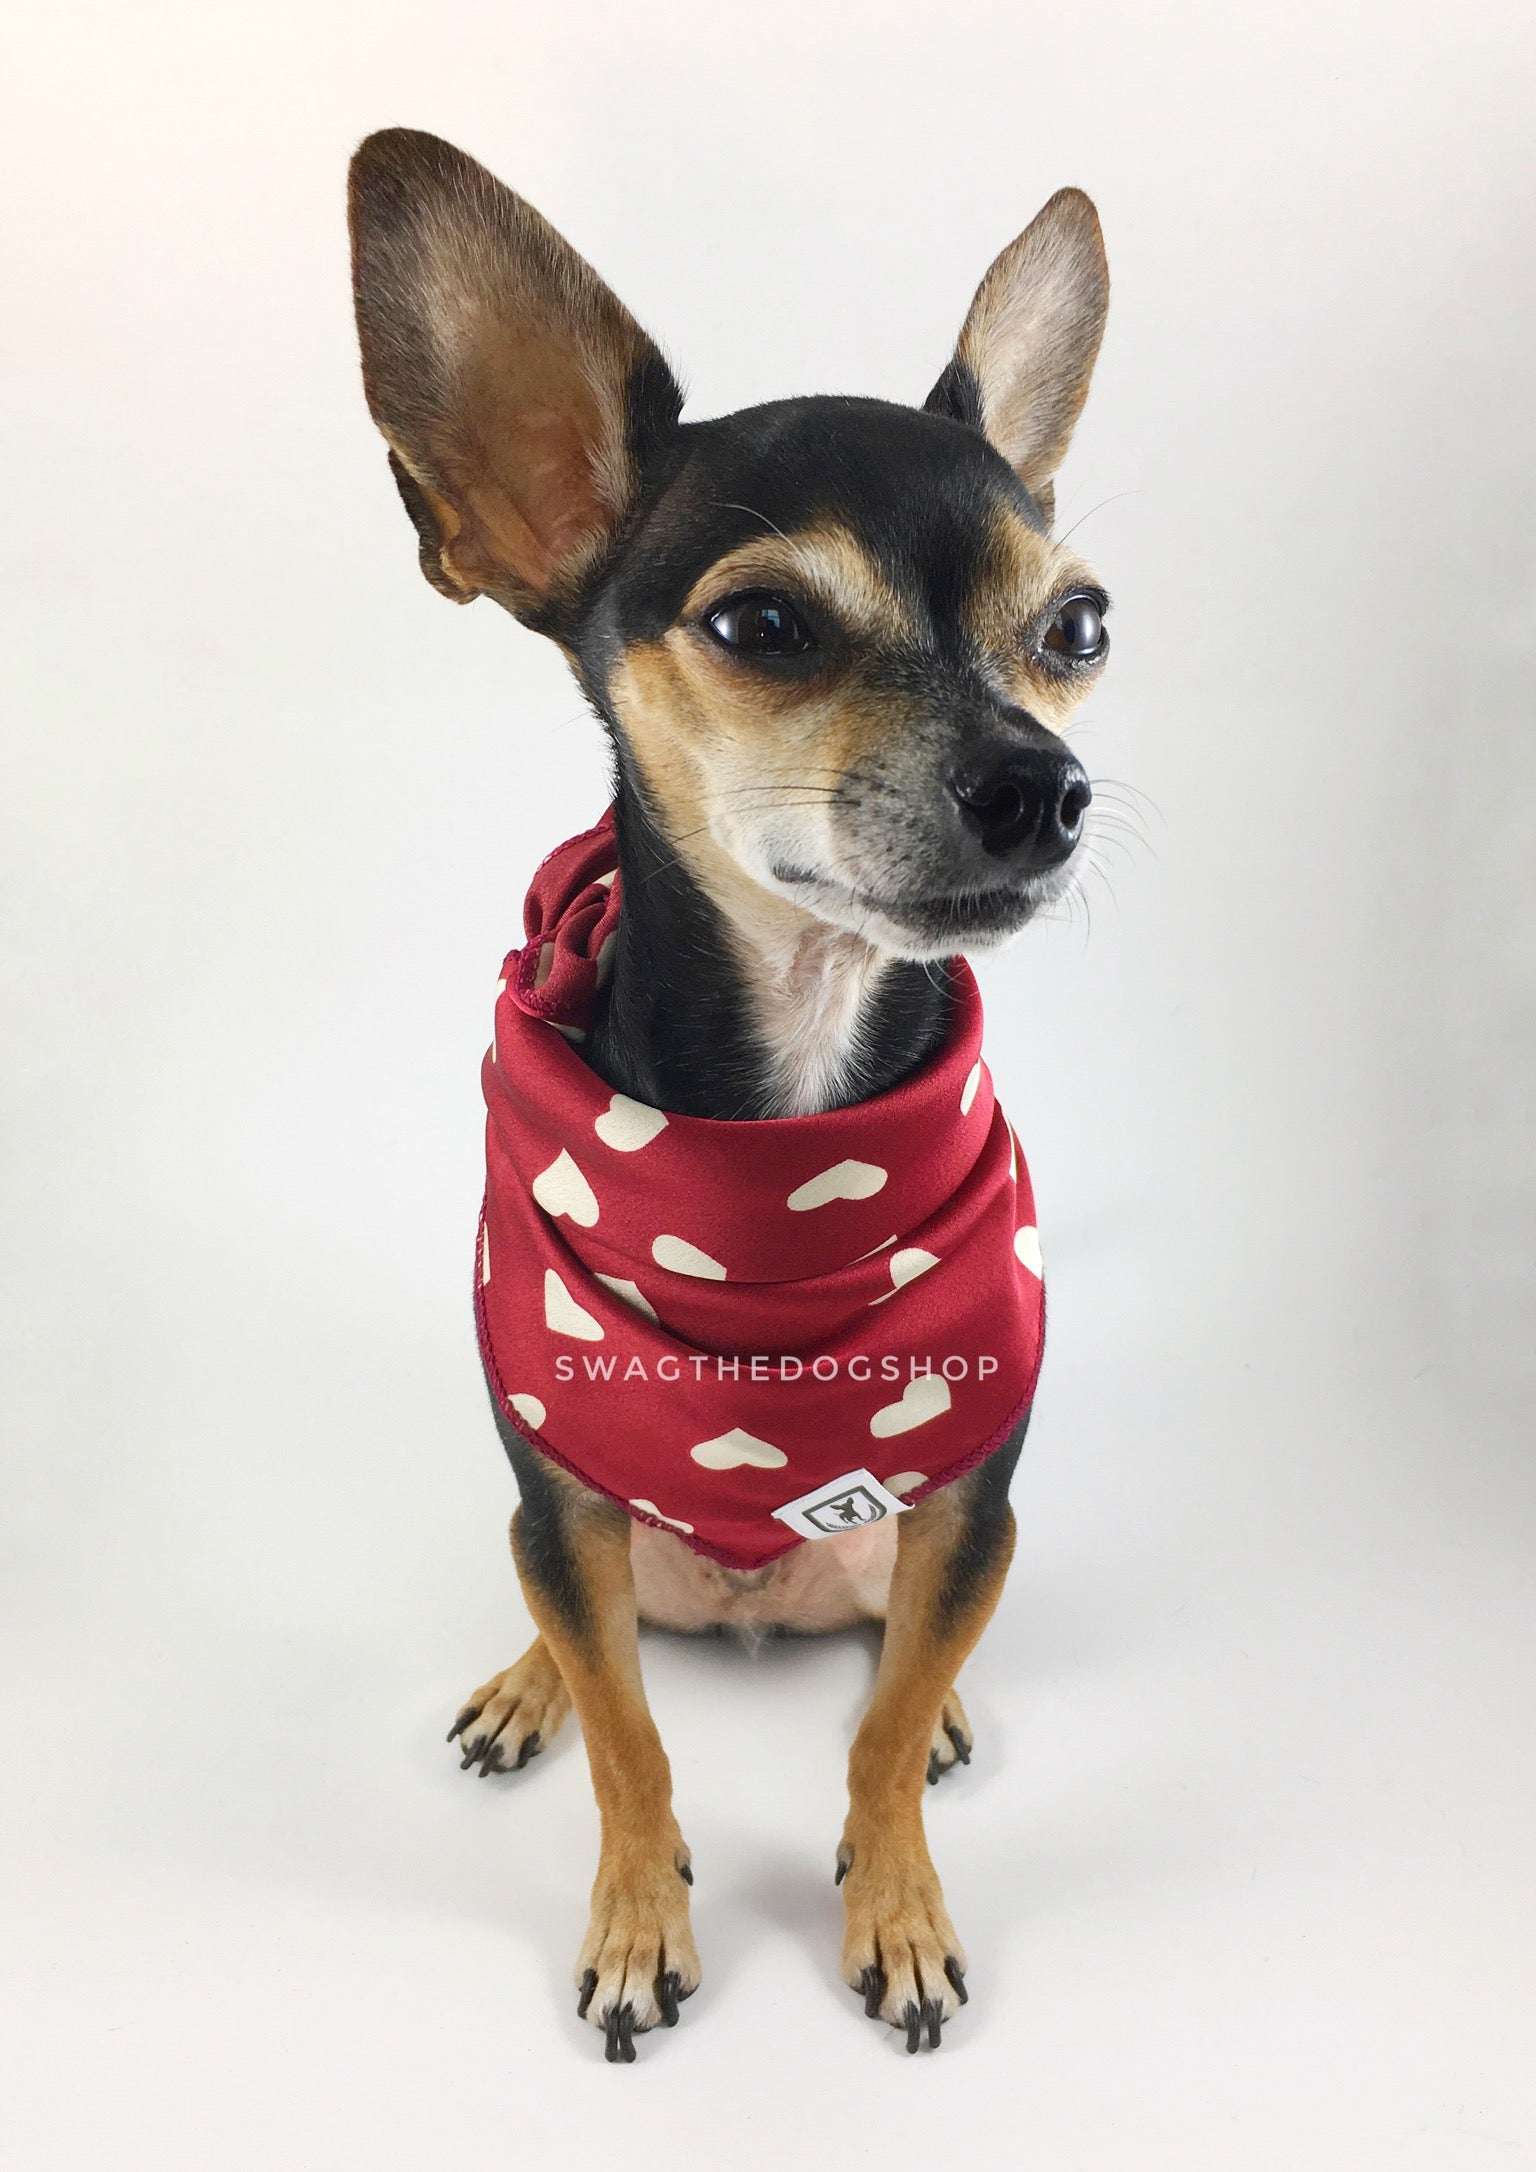 Full of Heart Red Swagdana Scarf - Full Front View of Cute Chihuahua Wearing Swagdana Scarf as Bandana. Dog Bandana. Dog Scarf.